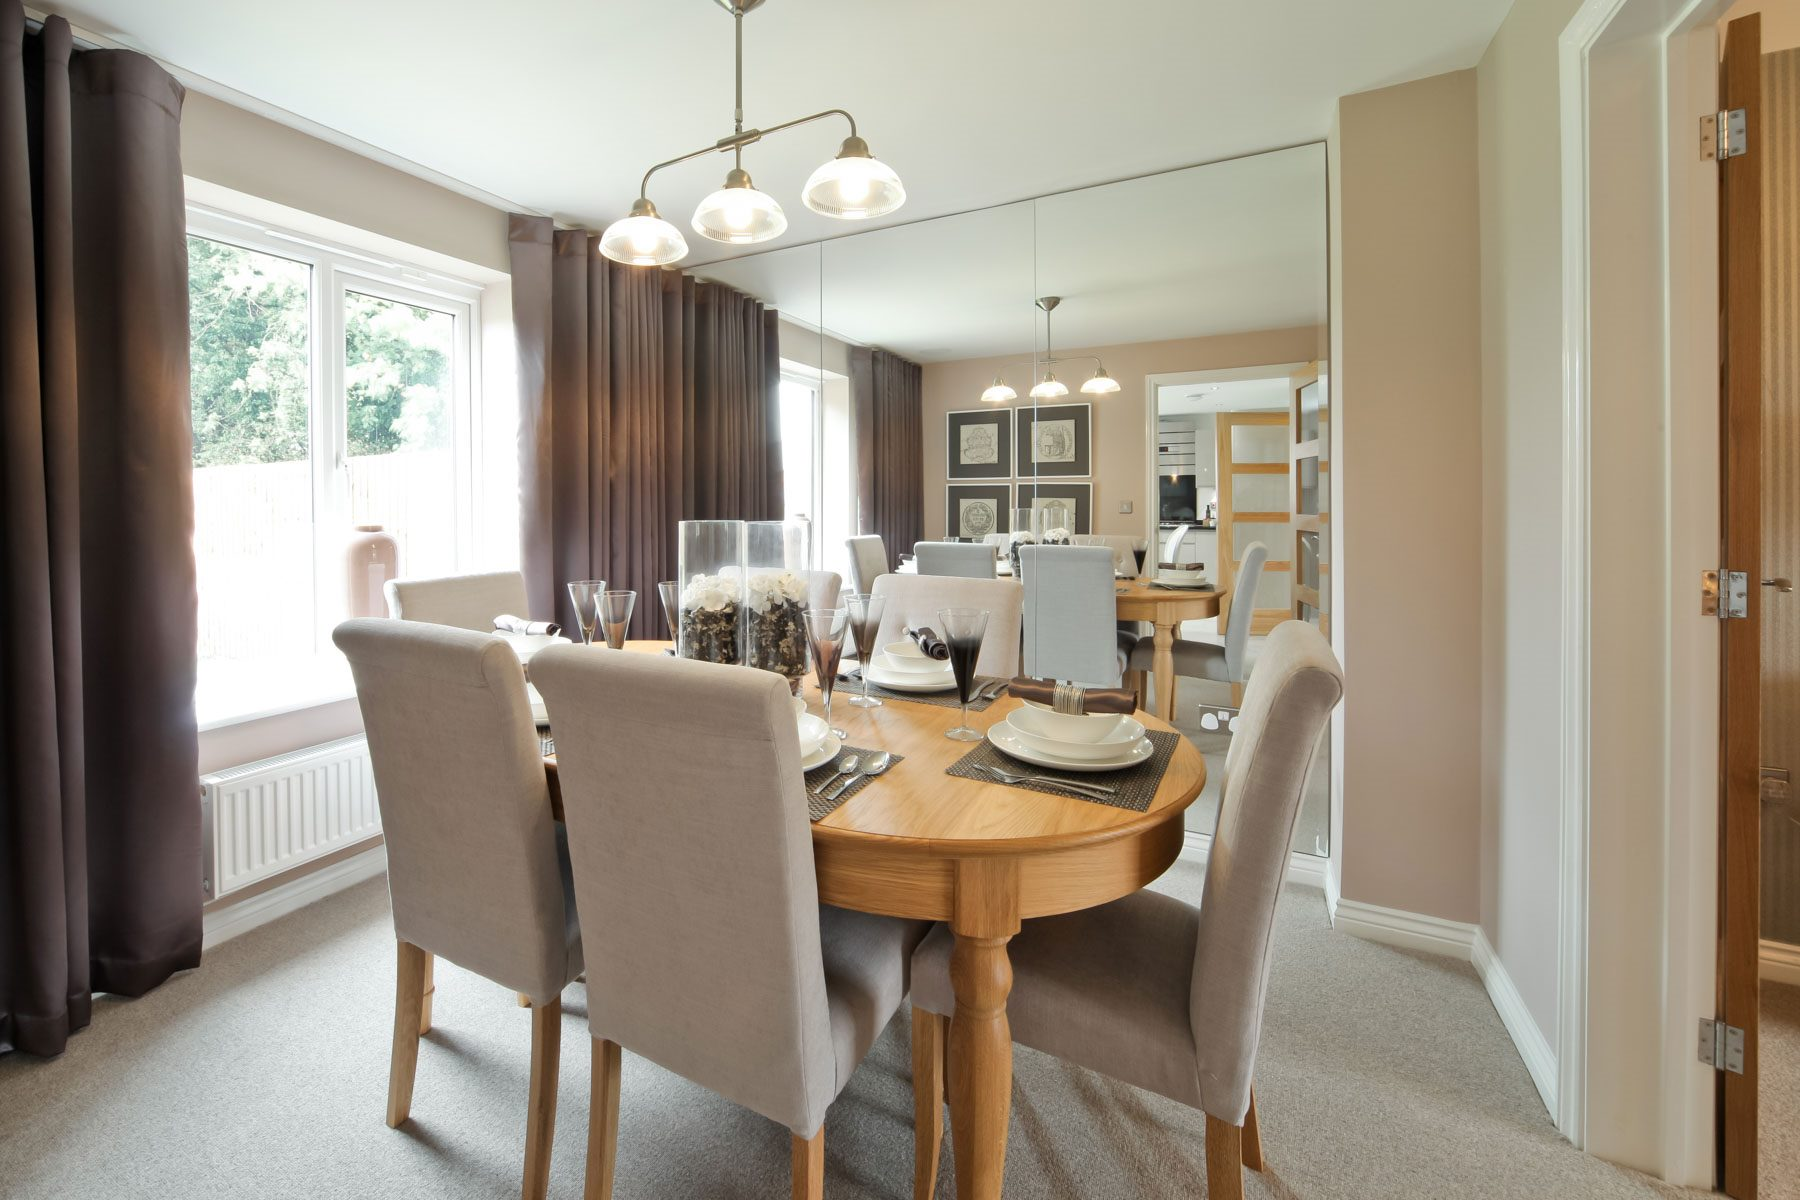 010_OM_Eynsham_Dining_Room